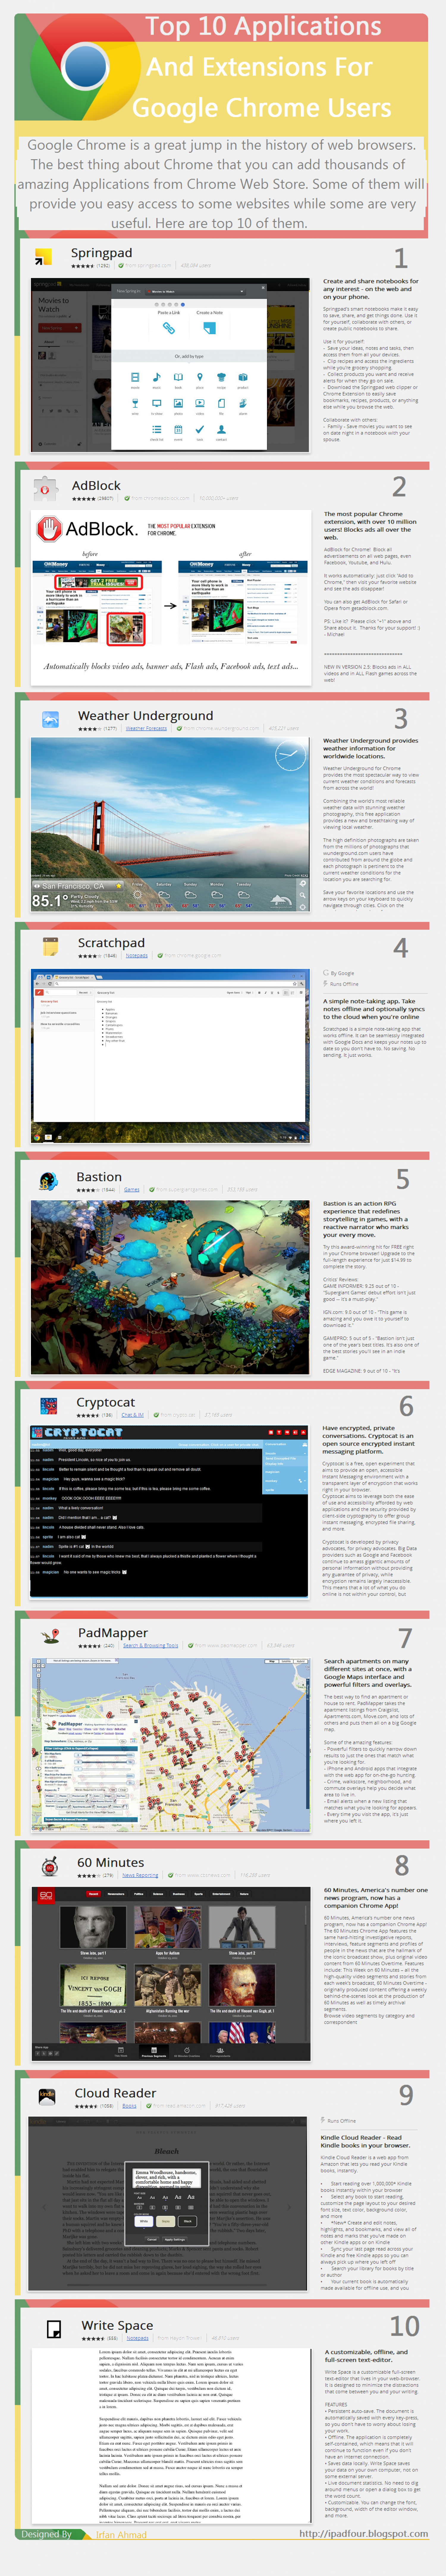 Top 10 Applications And Extensions For Google Chrome Users  Infographic